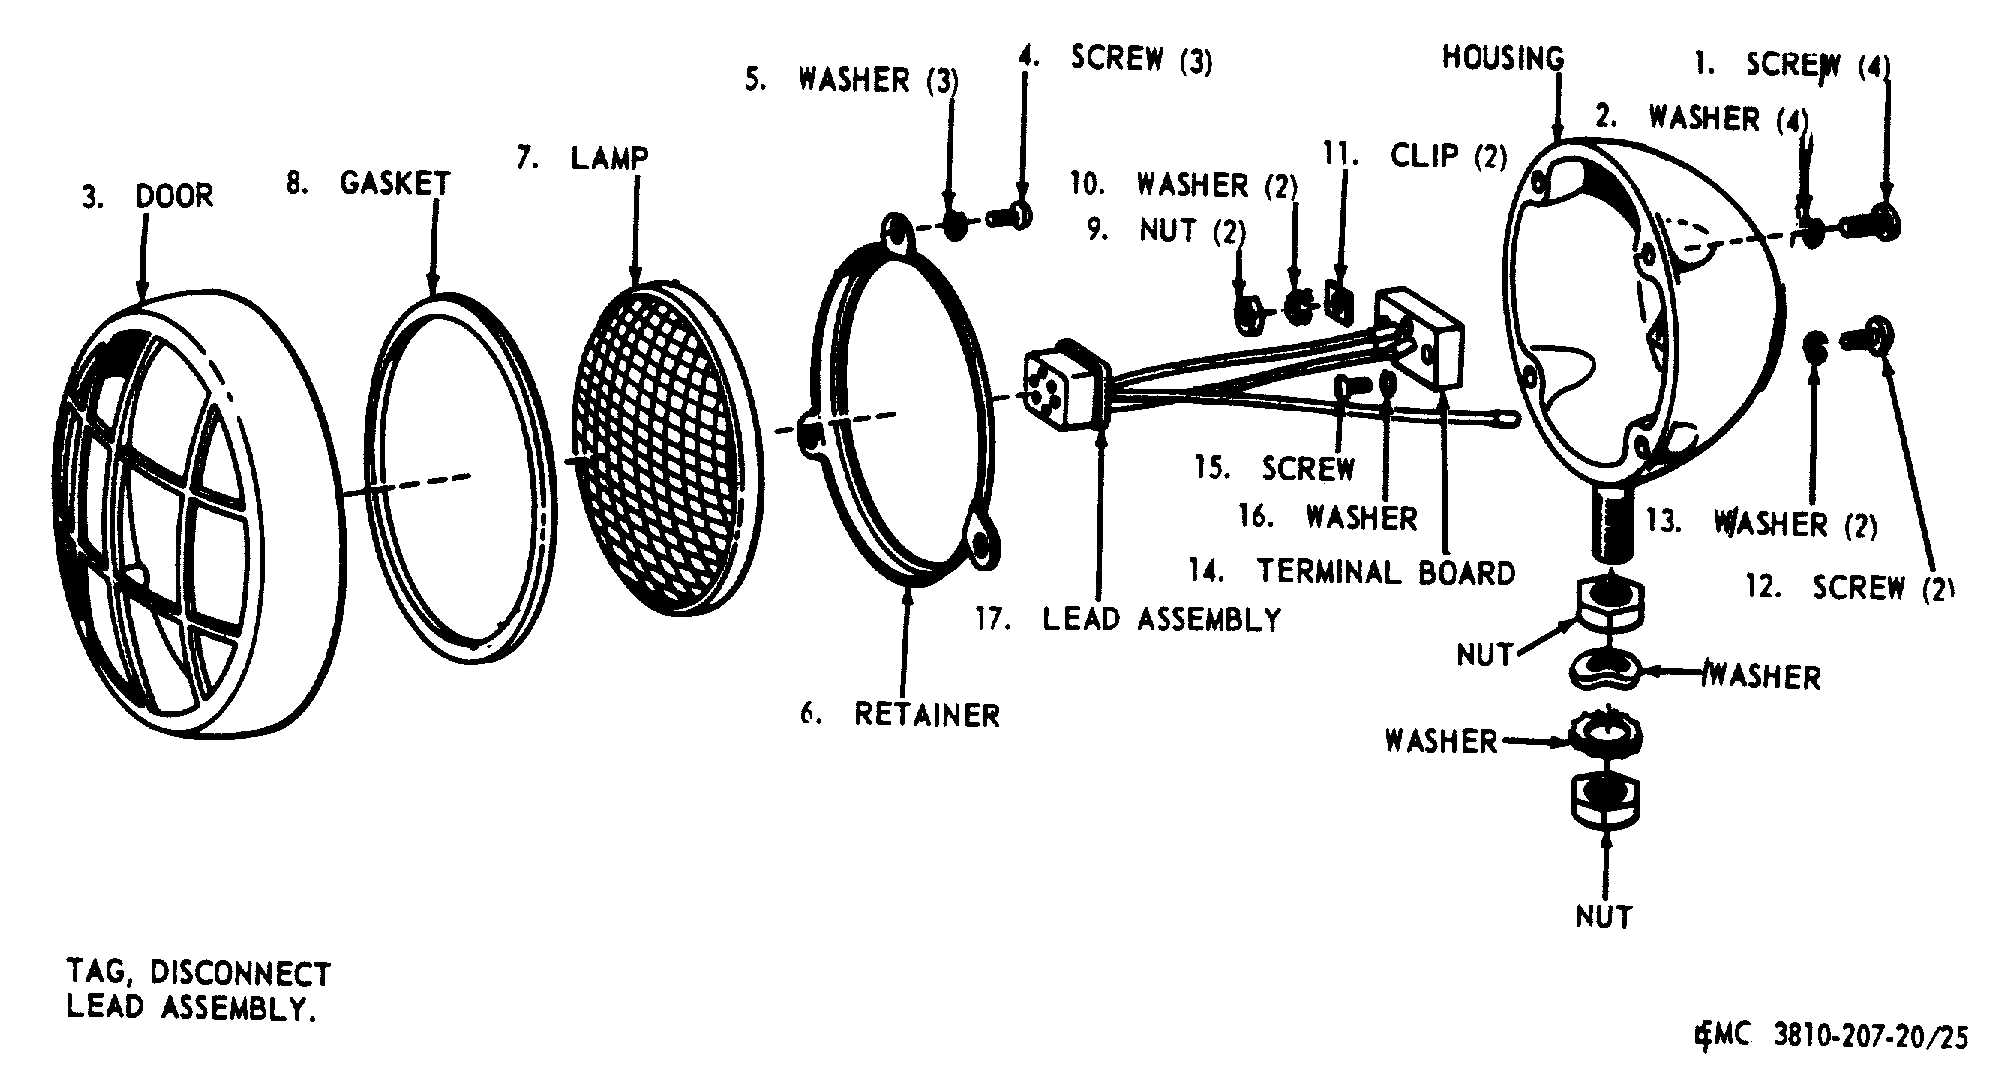 Figure 25. Floodlight, exploded view.